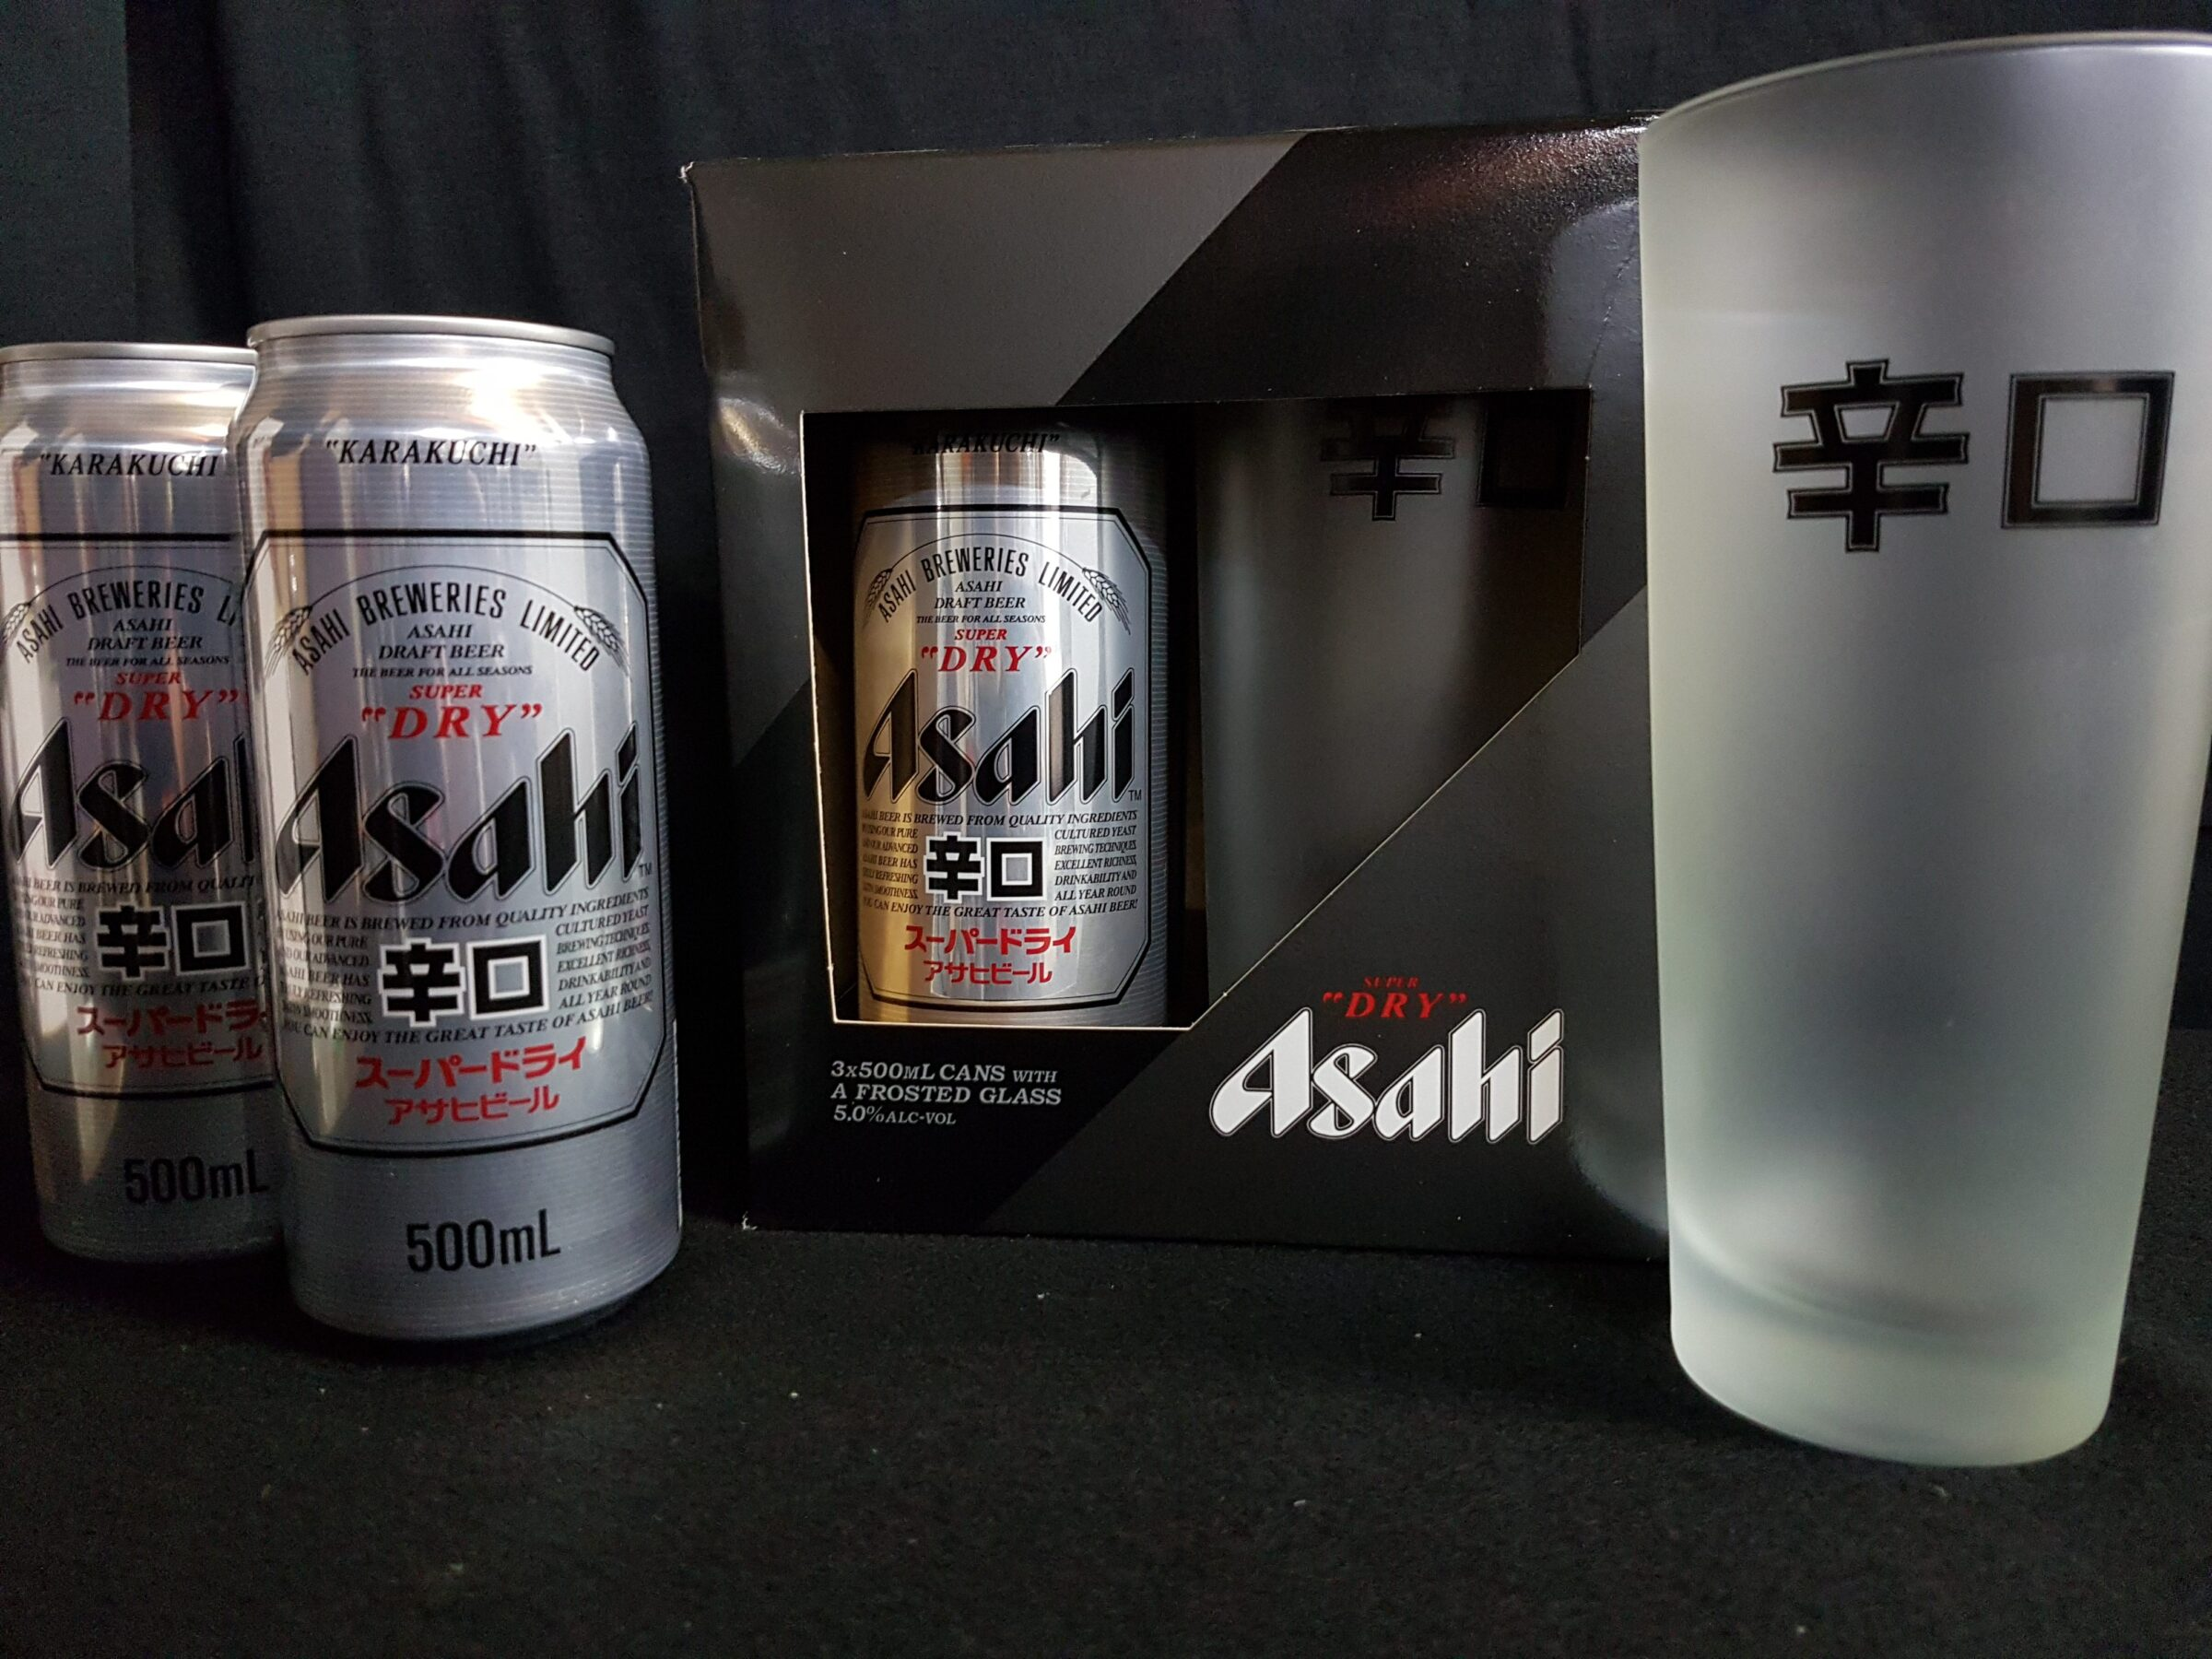 3 x Asahi Super Dry 500ml Cans with a Asahi frosted glass for $20.